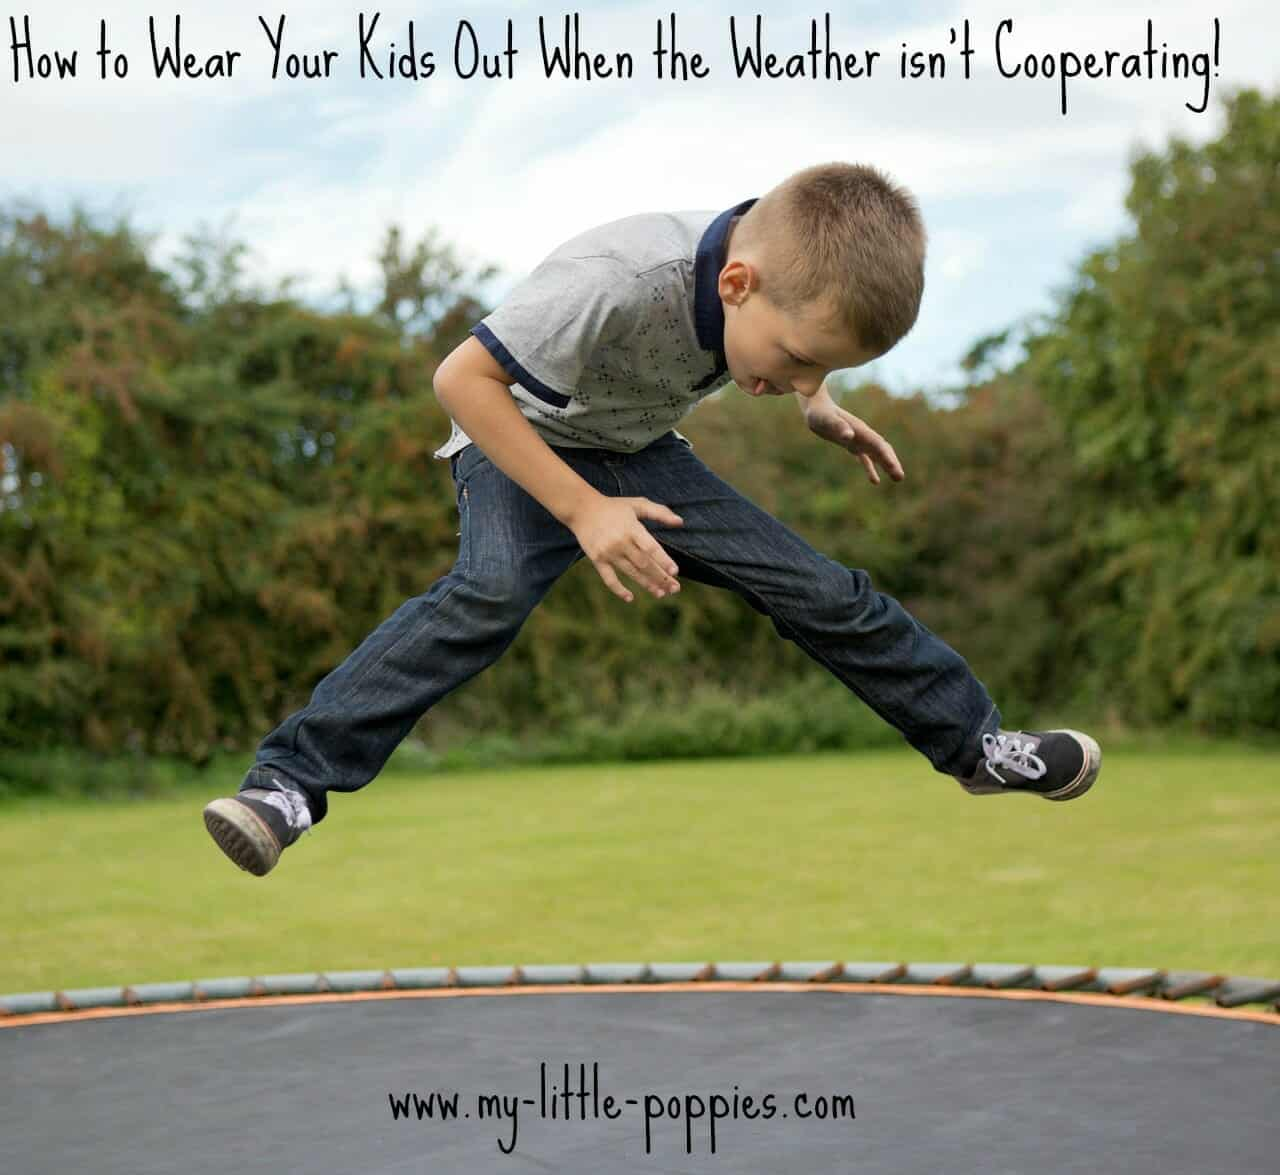 How to Wear Kids Out, 10+ Games to Get Kids Moving